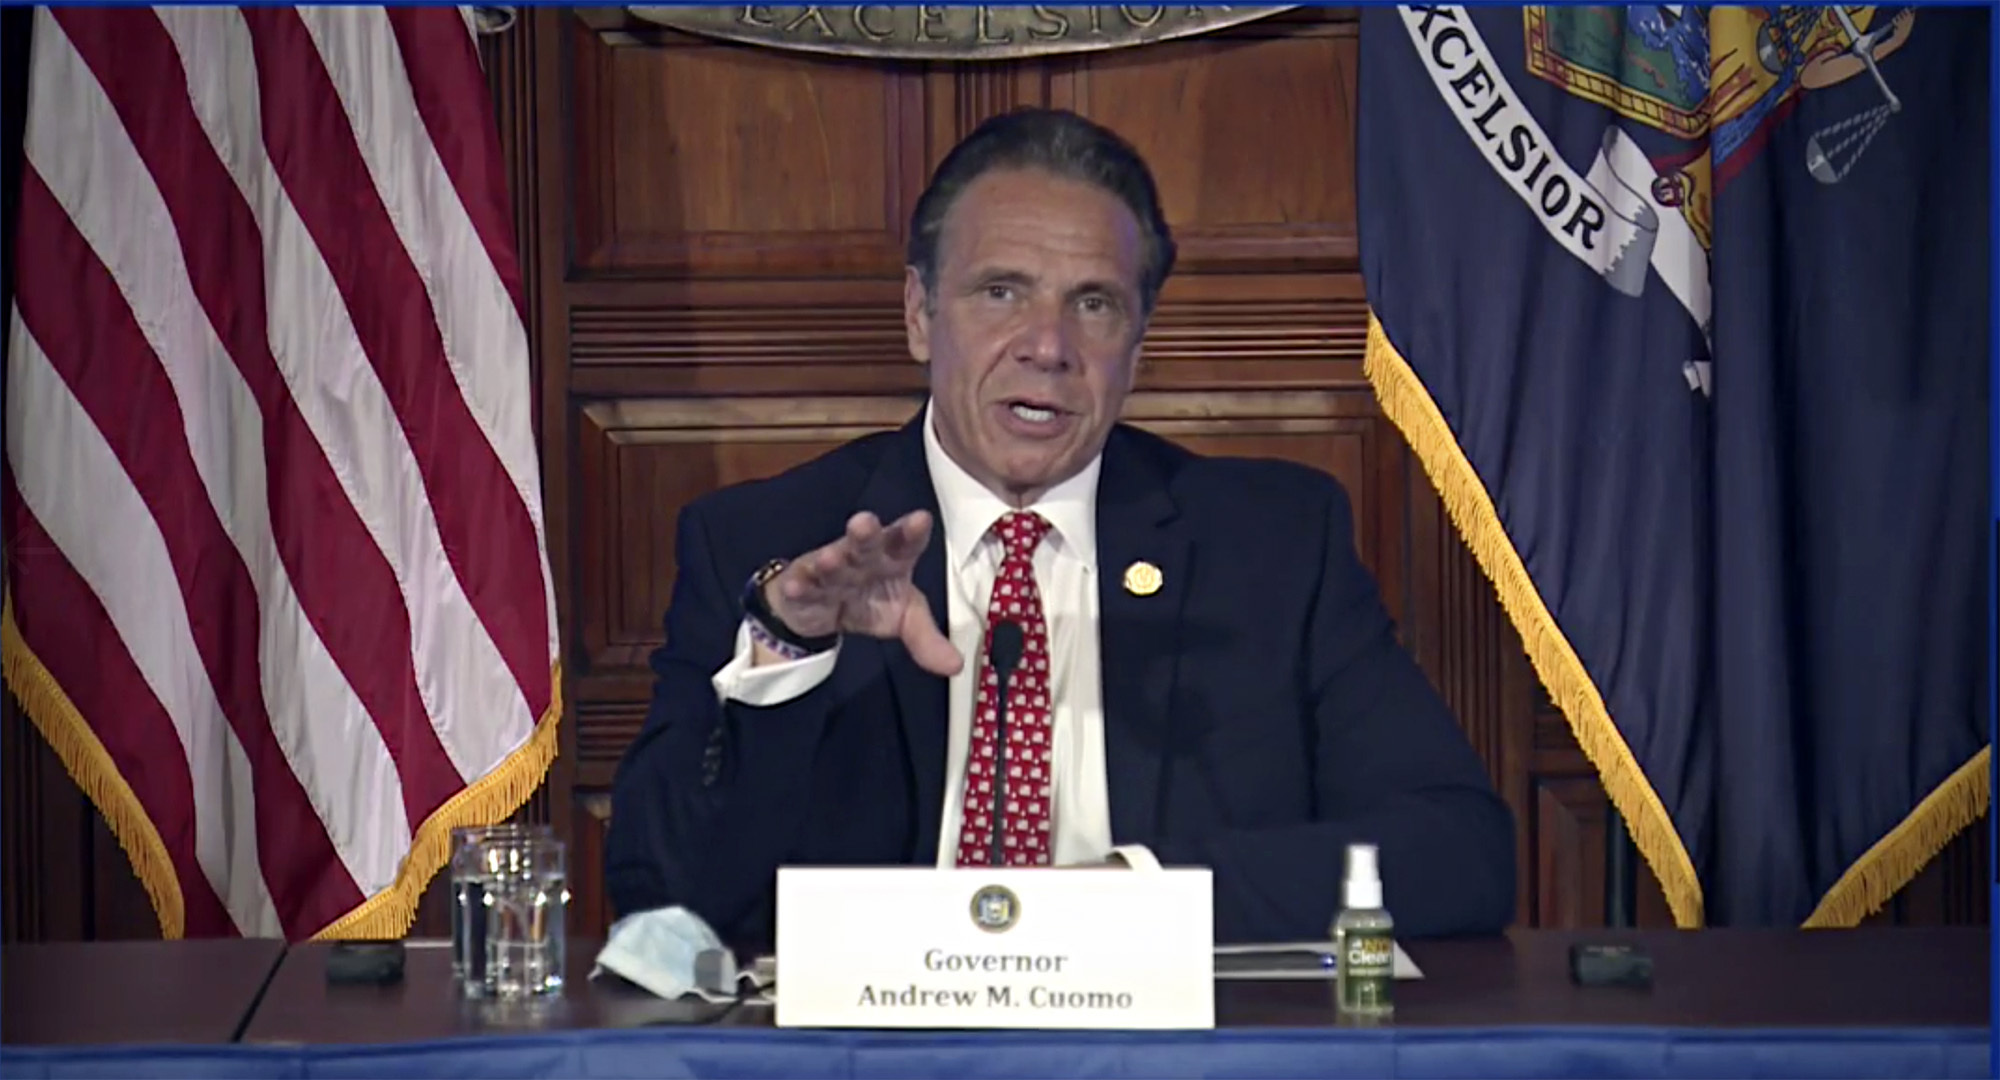 new york governor andrew cuomo speaks at a desk